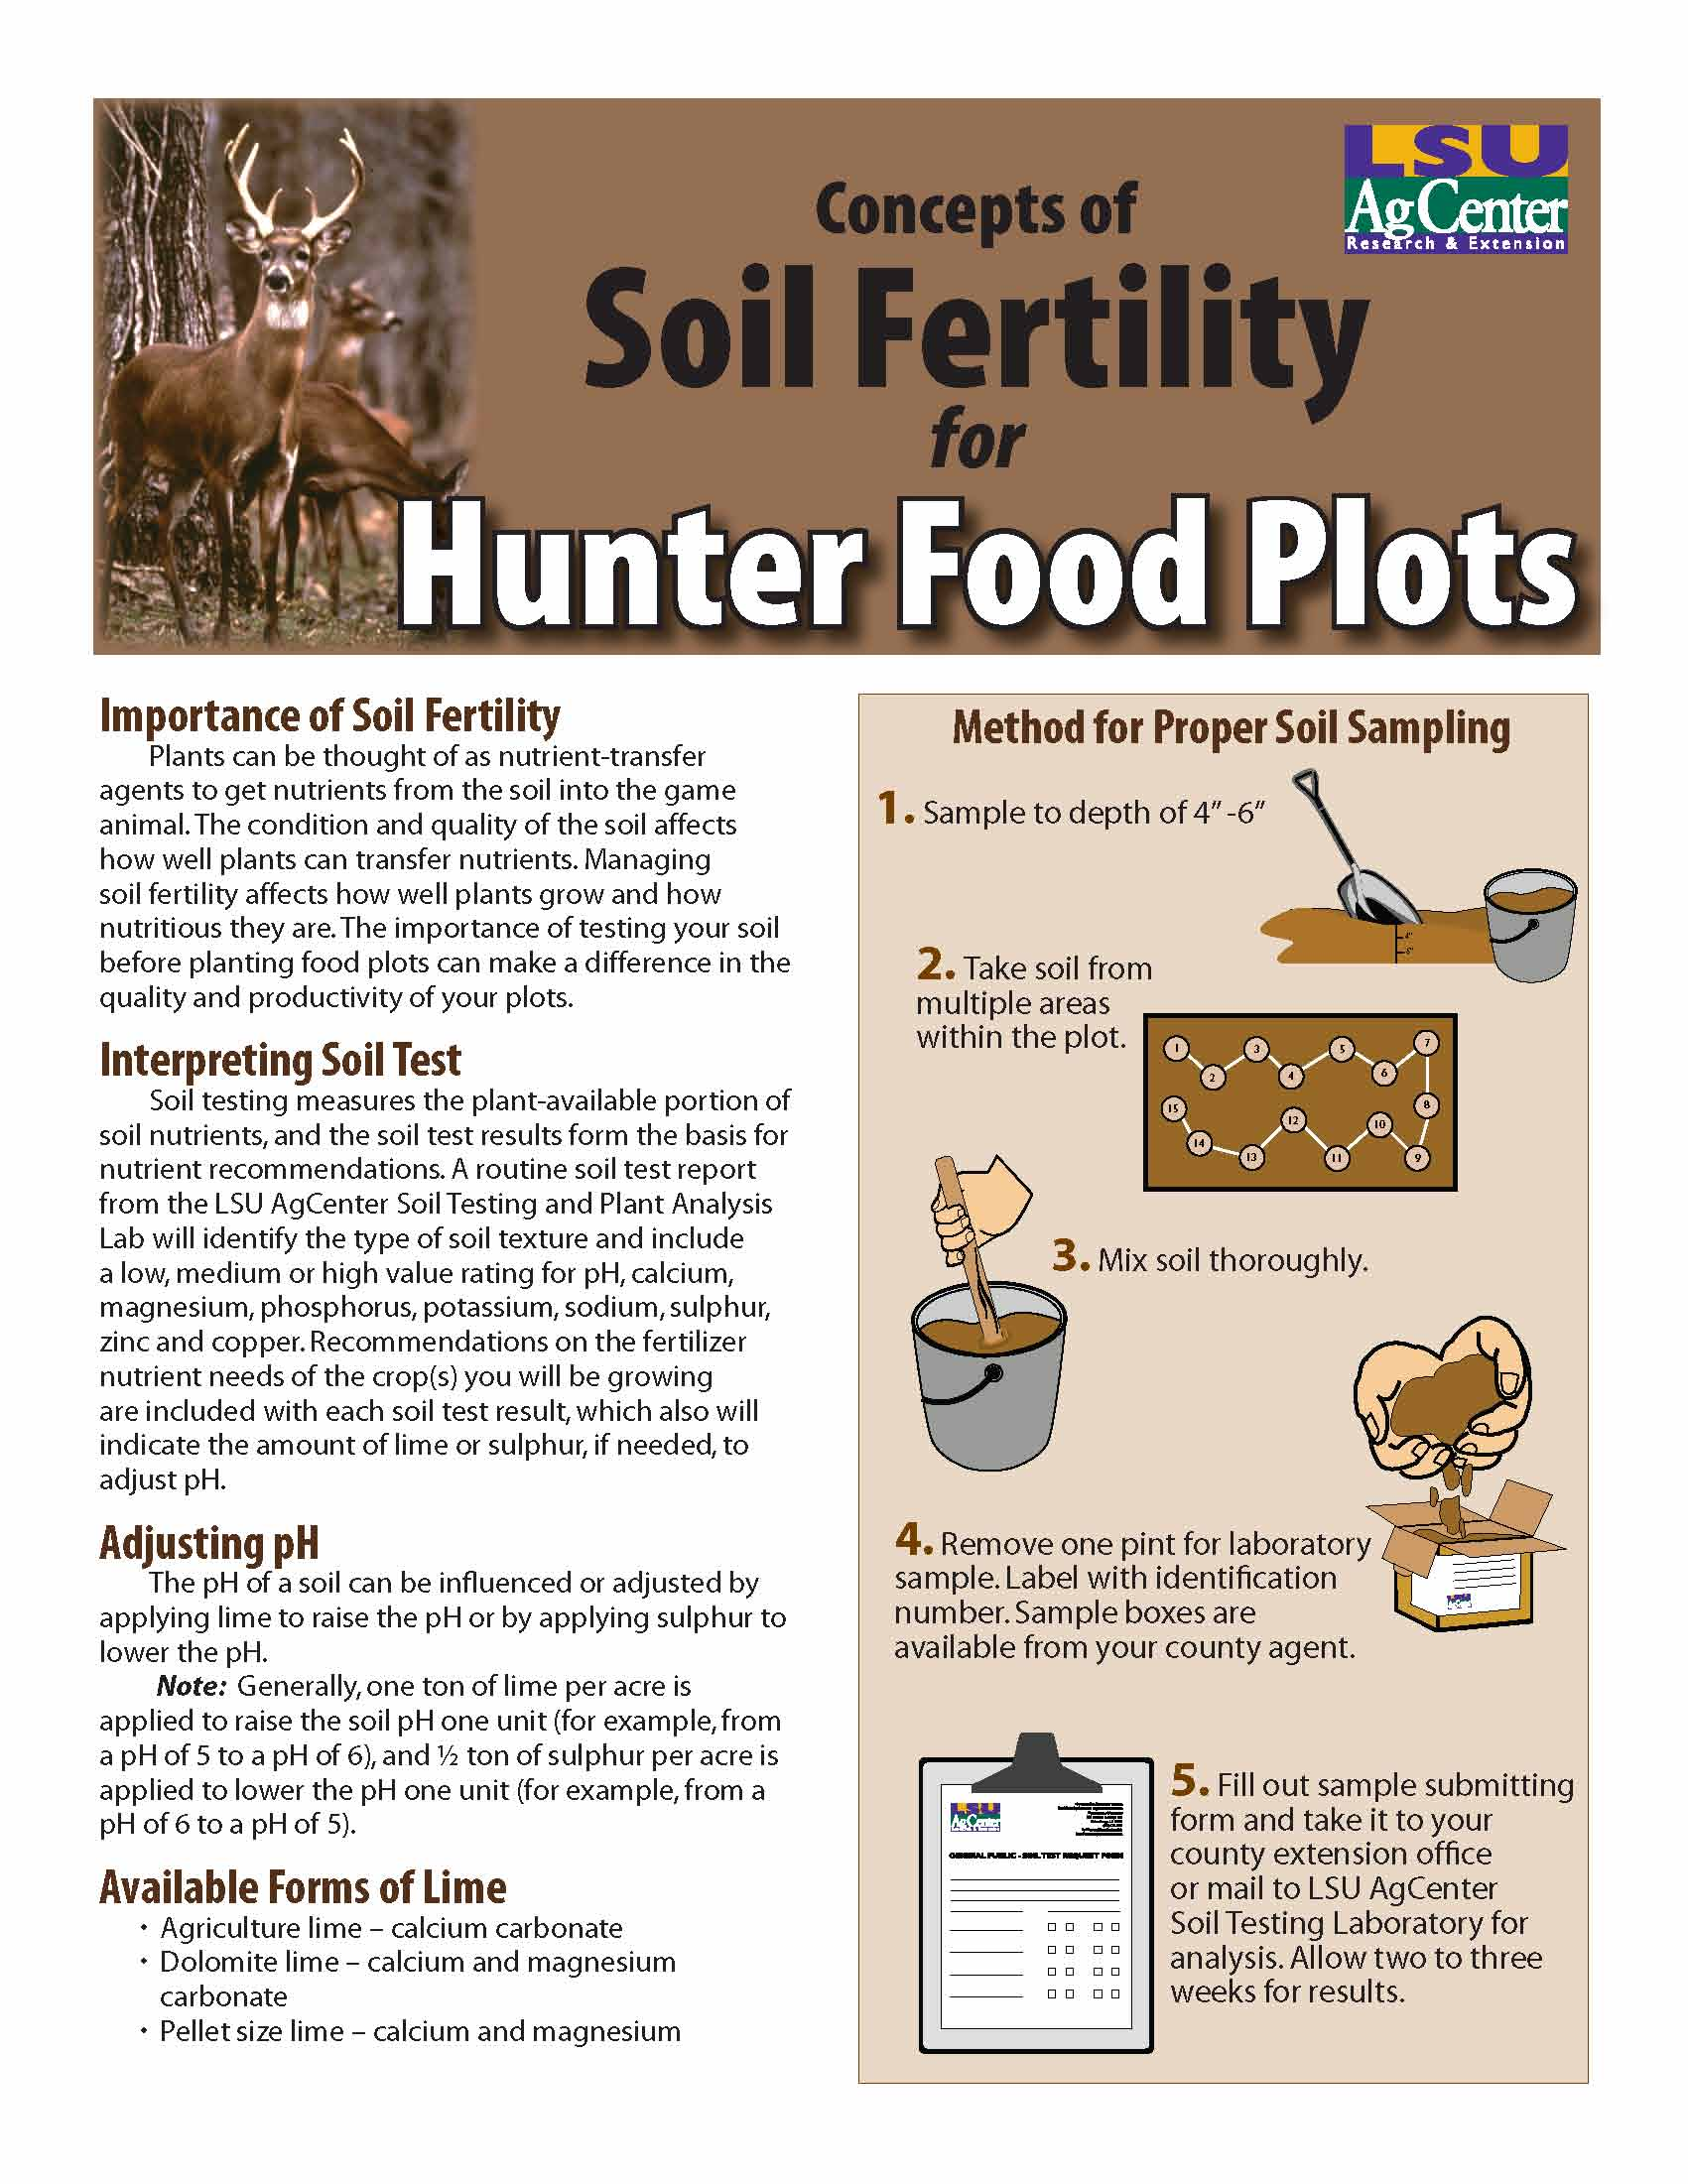 Concepts of Soil Fertility for Hunter Food Plots